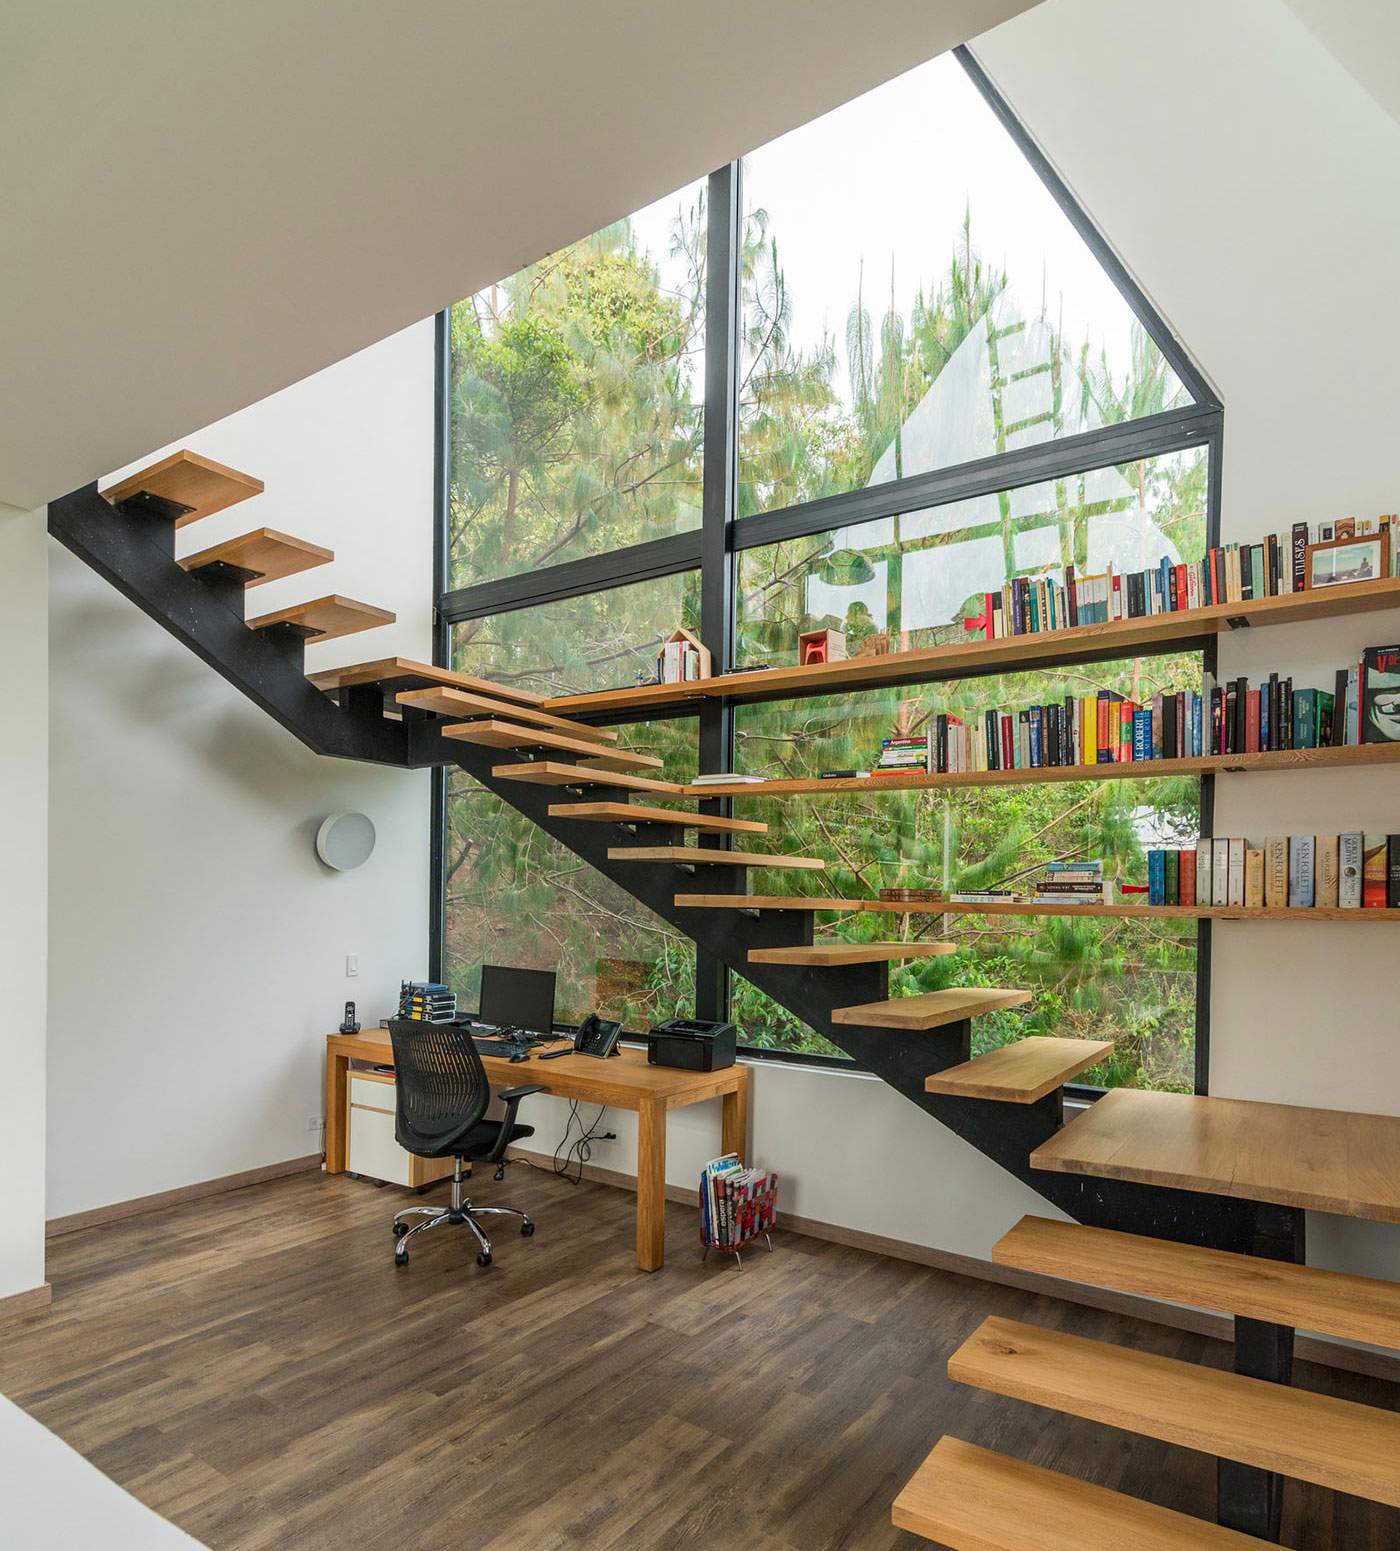 25 Stair Design Ideas For Your Home: Best Staircase Designs For The Modern Home